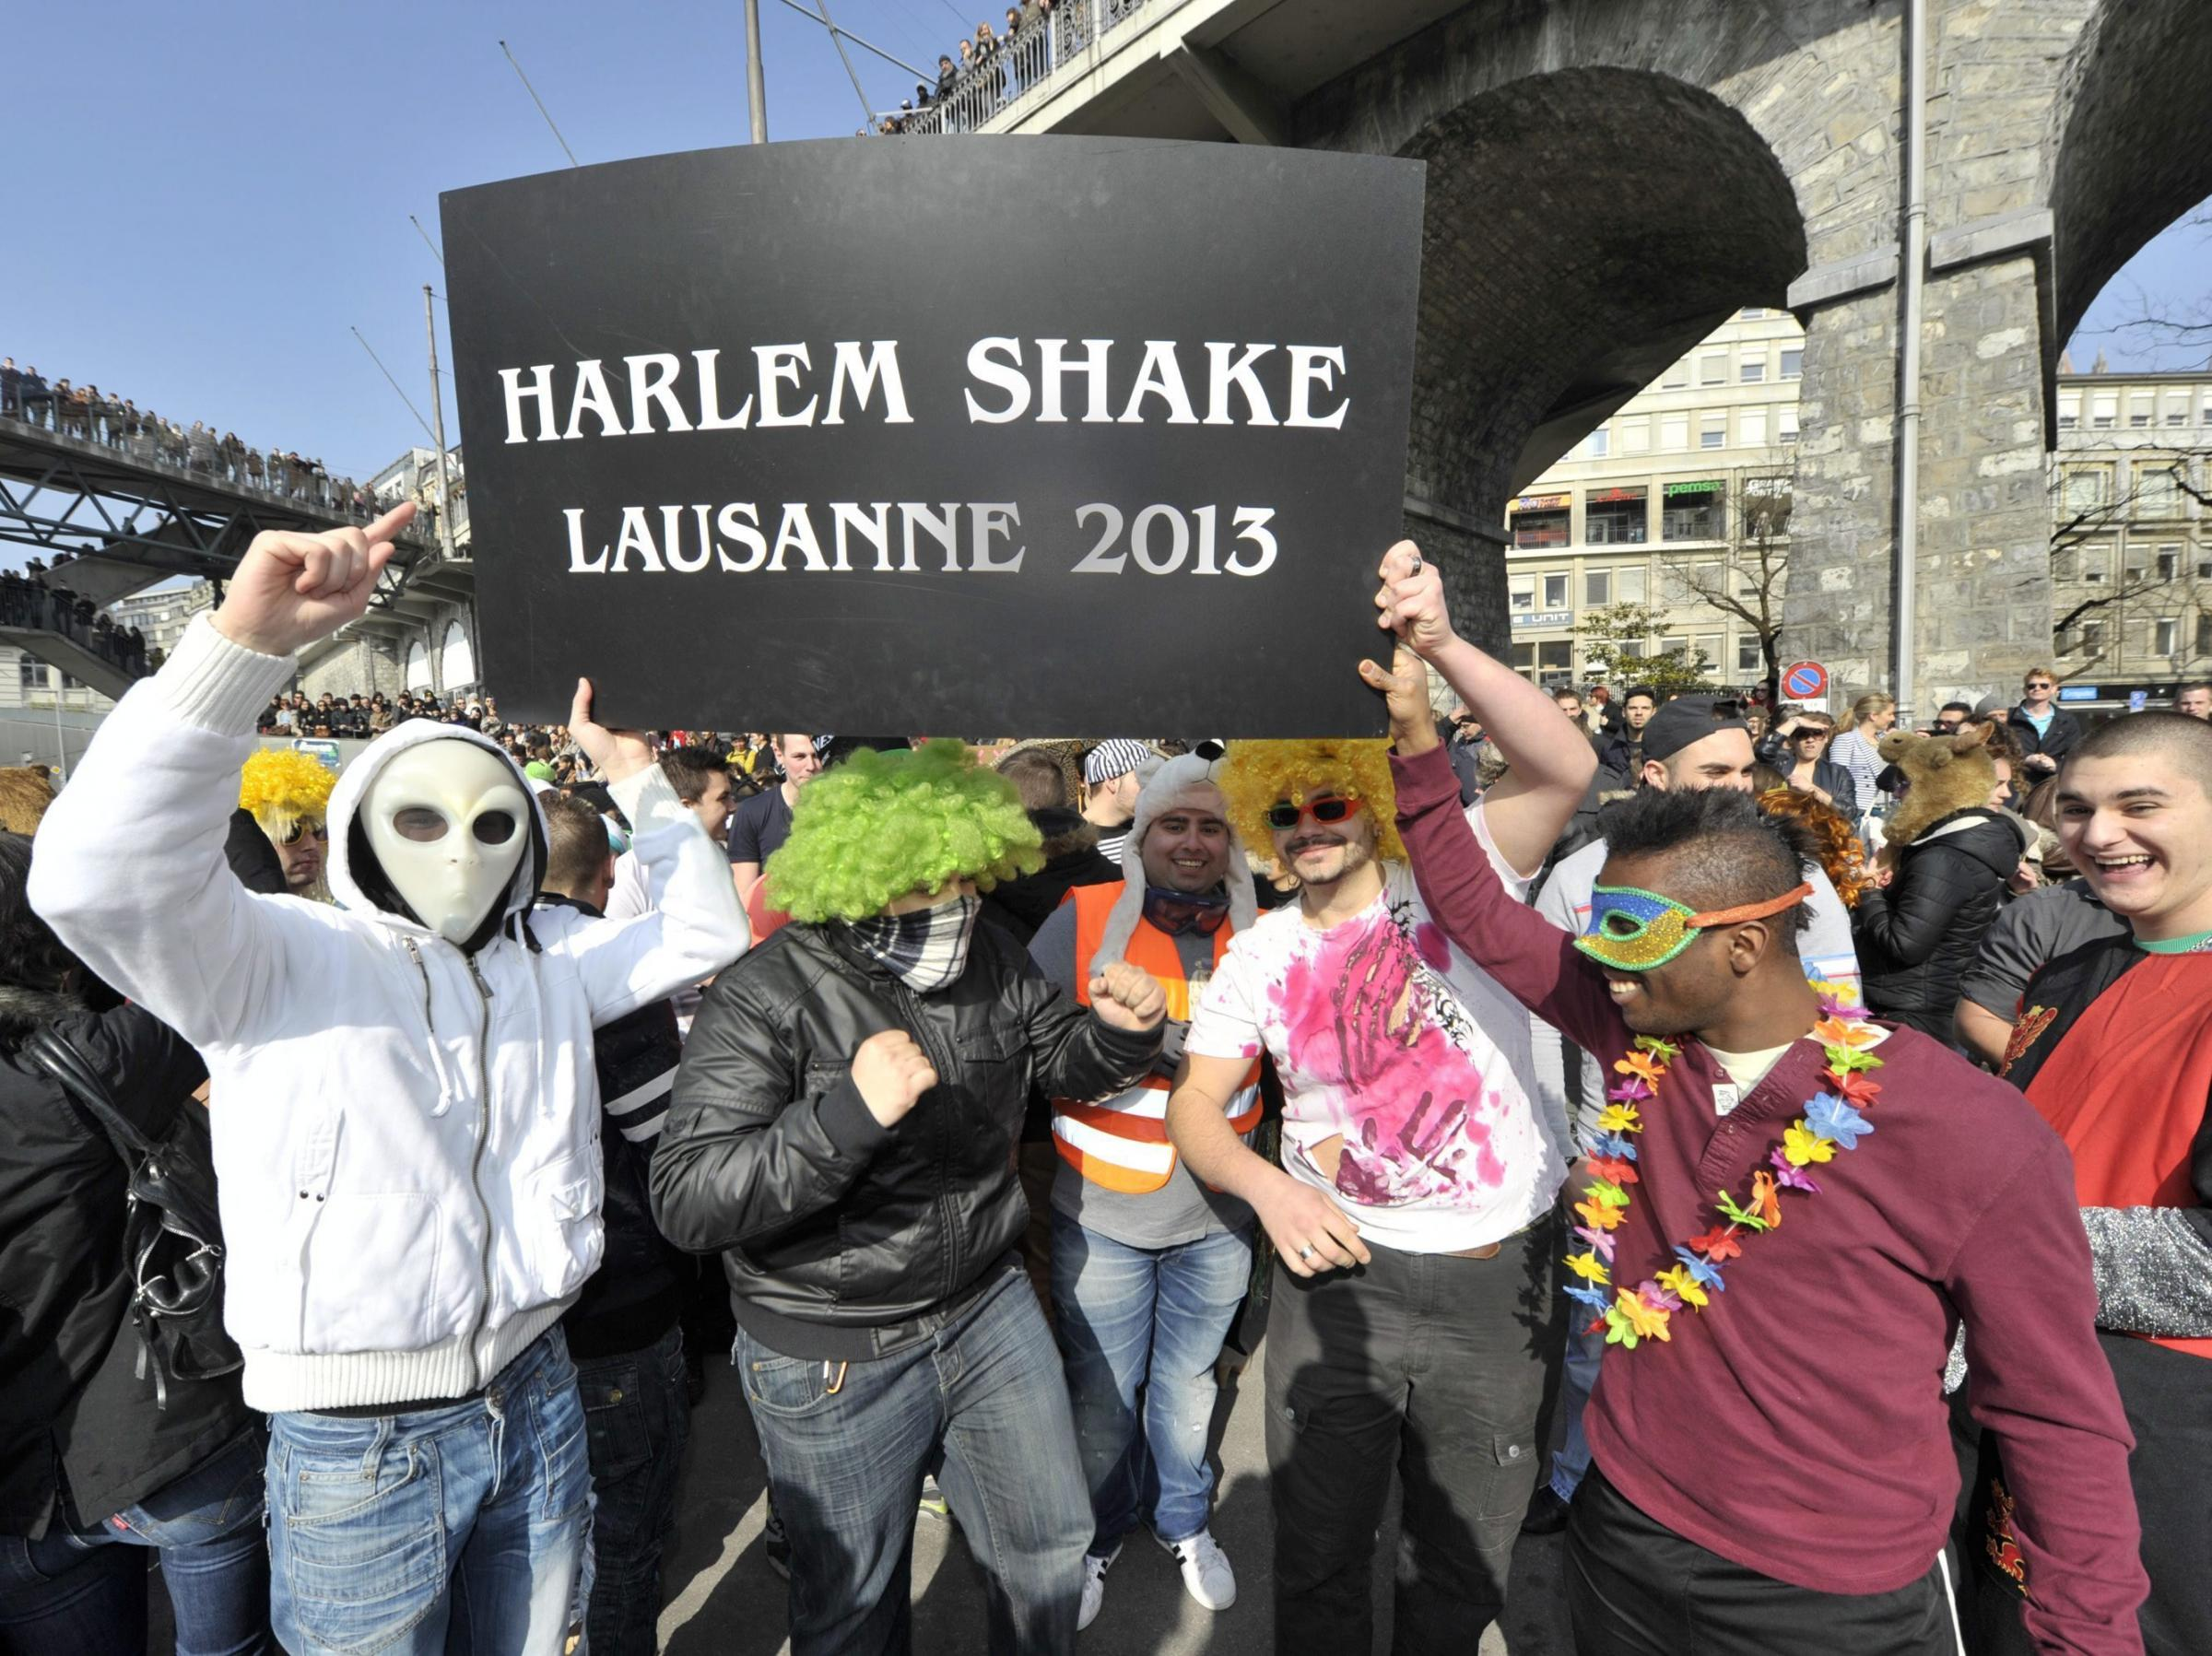 Today's 'Harlem Shake' Report: 15 Aussie Miners Fired ...